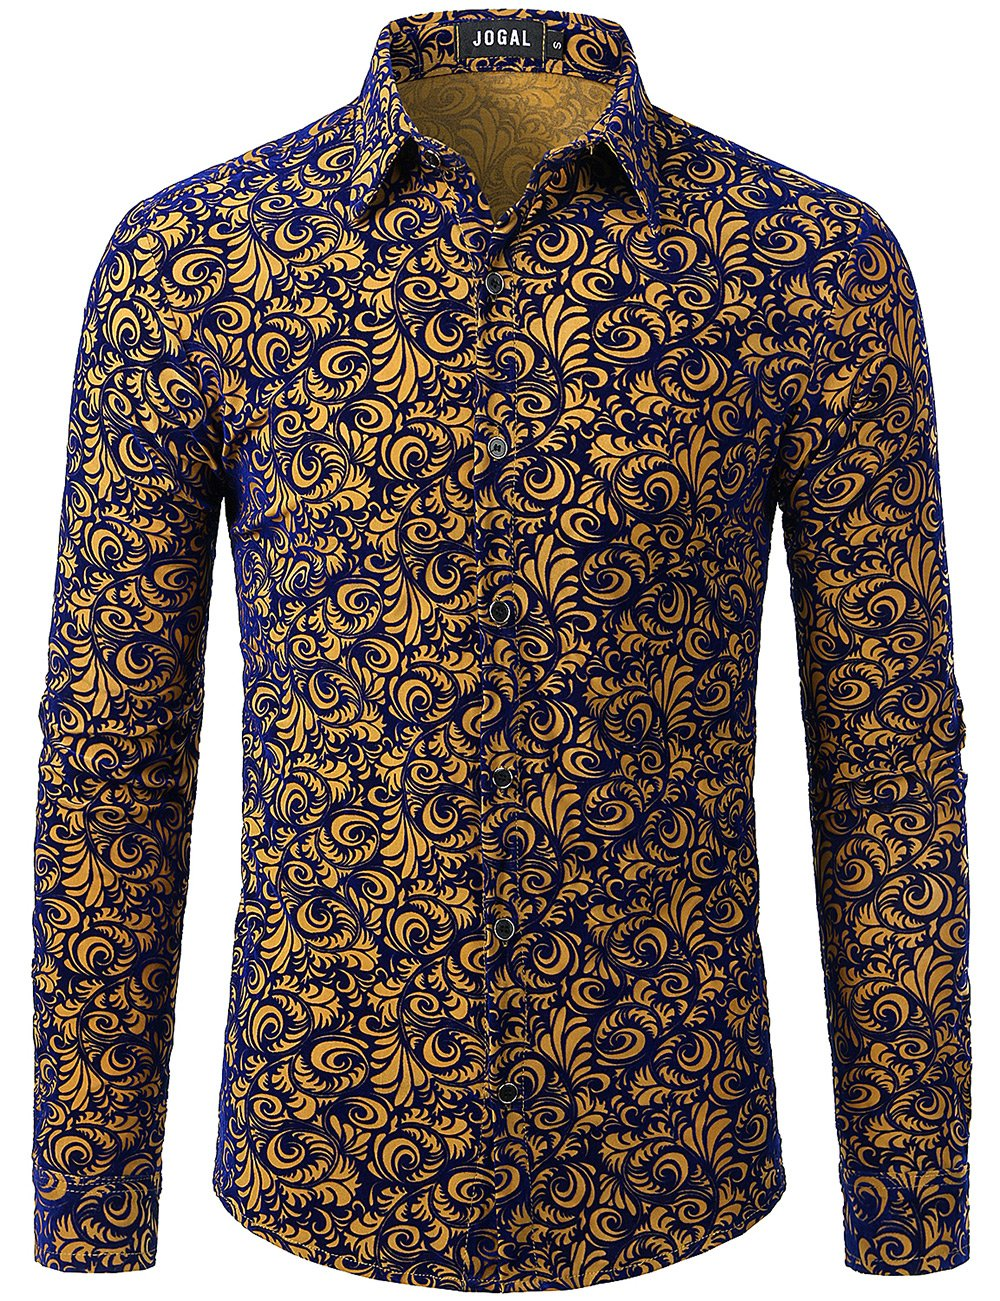 JOGAL Men's Floral Vintage Velvet Slim Fit Long Sleeve Casual Button Down Shirt